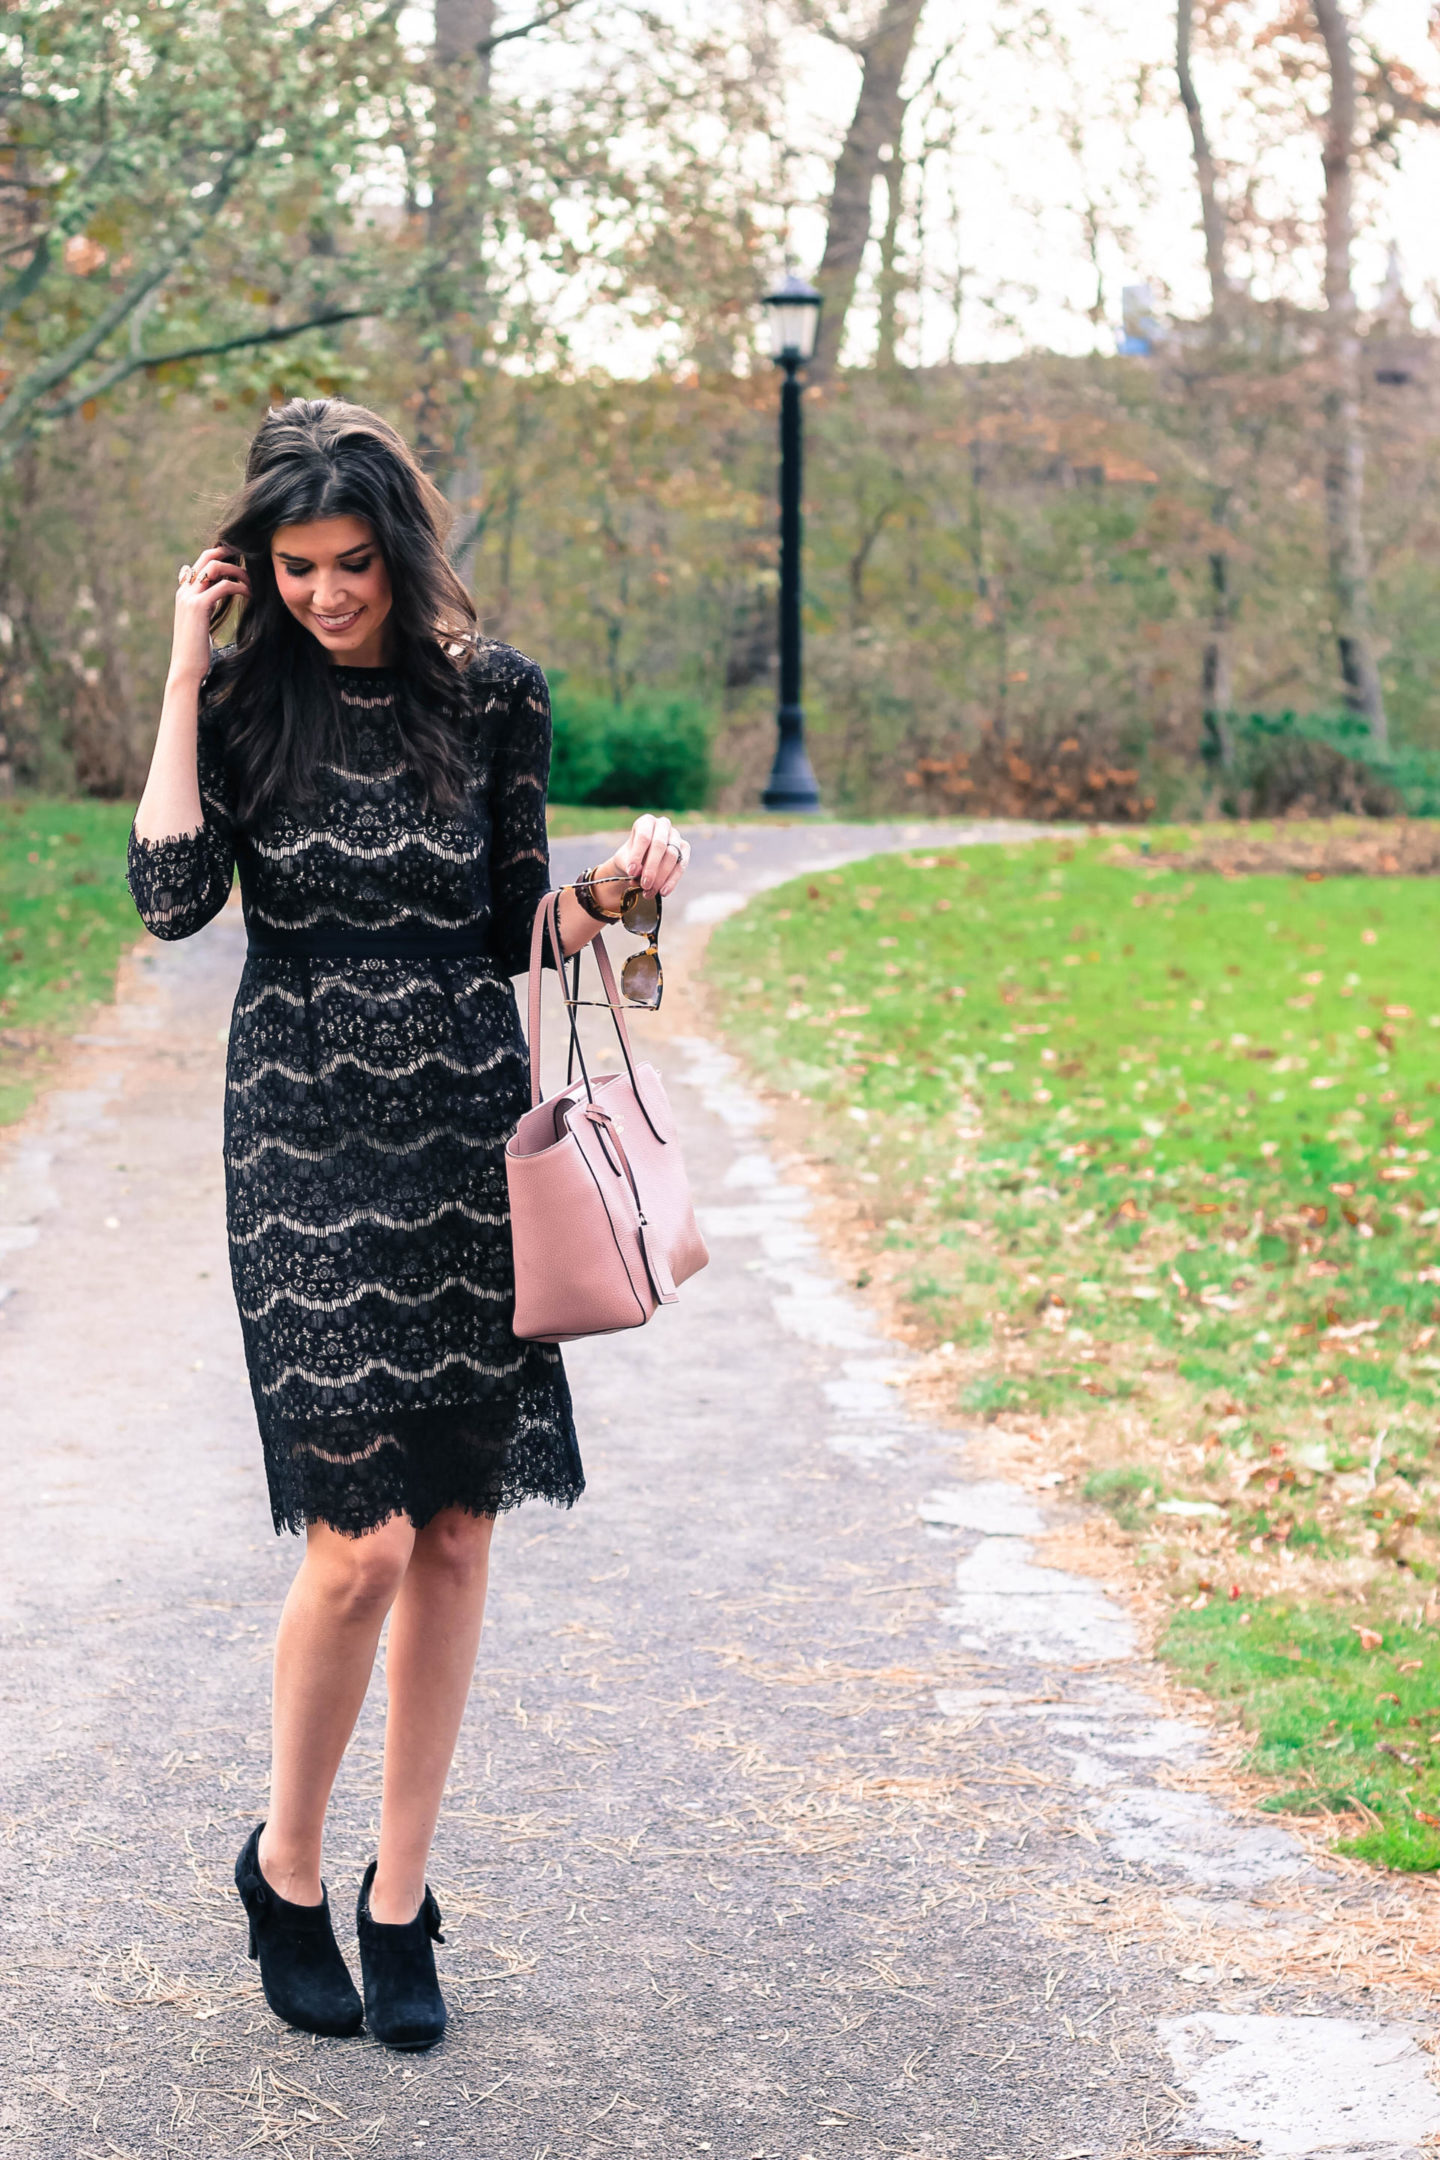 The Perfect Black Lace Midi Dress From Amazon by New York fashion blogger Style Waltz